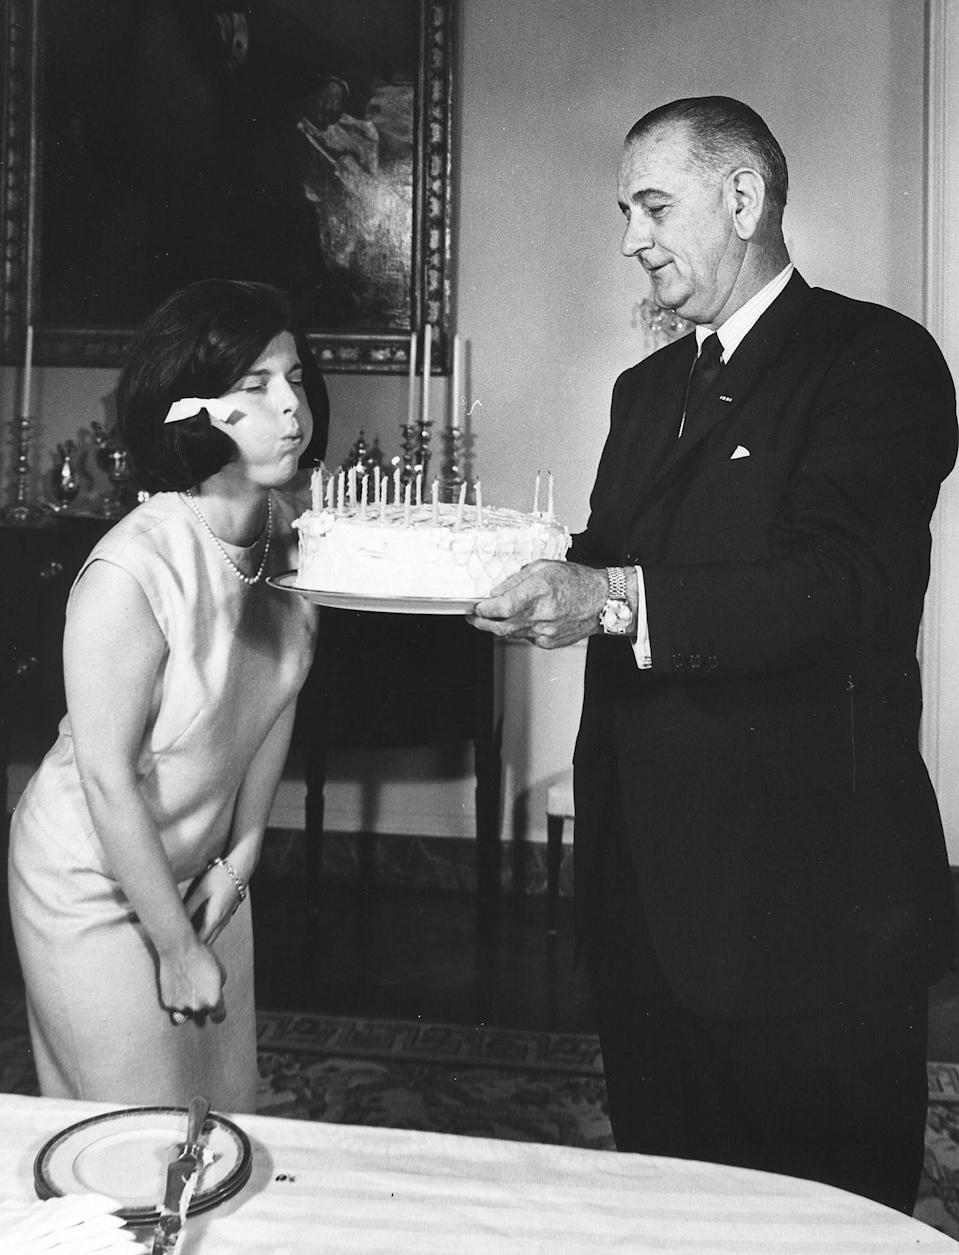 <p>President Lyndon B. Johnson holds a cake as his daughter Luci Baines blows out her birthday candles on her 17th birthday in July 1964.</p>